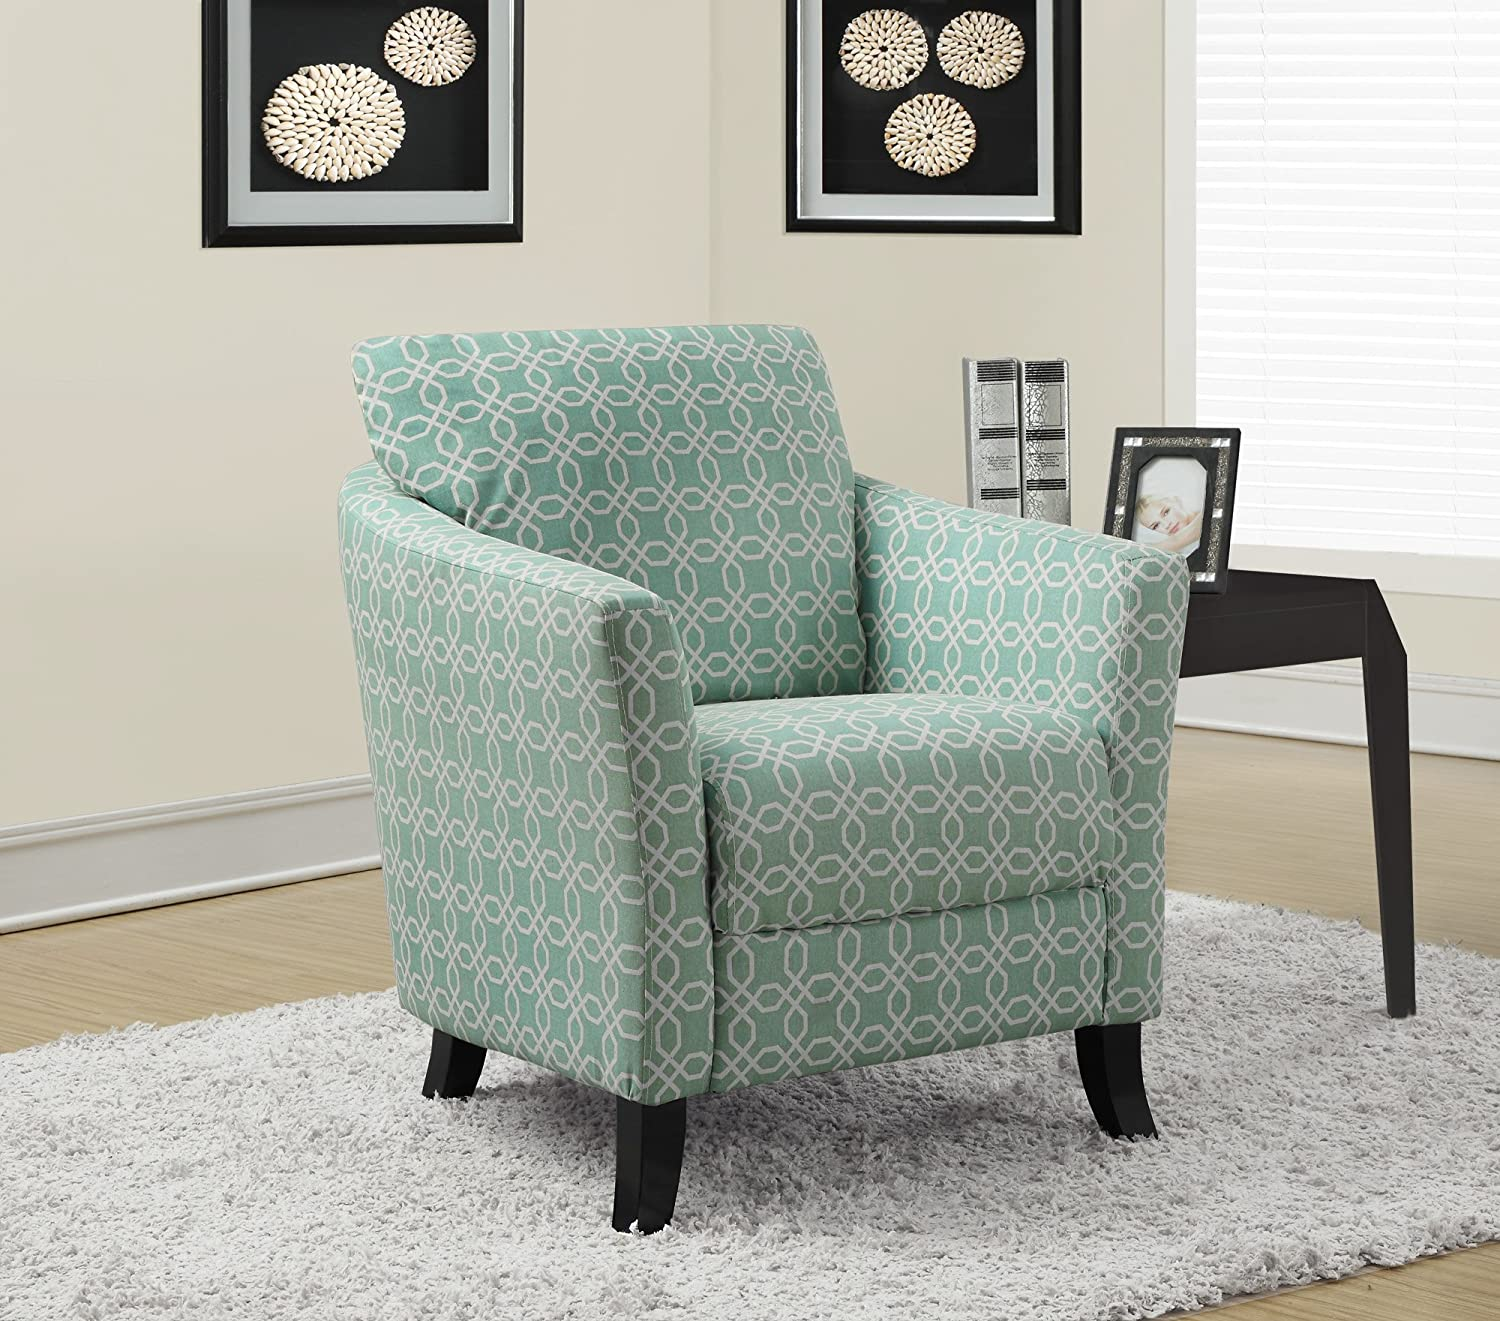 Faded Green Monarch Specialties Vintage French Fabric Accent Chair, Off-White